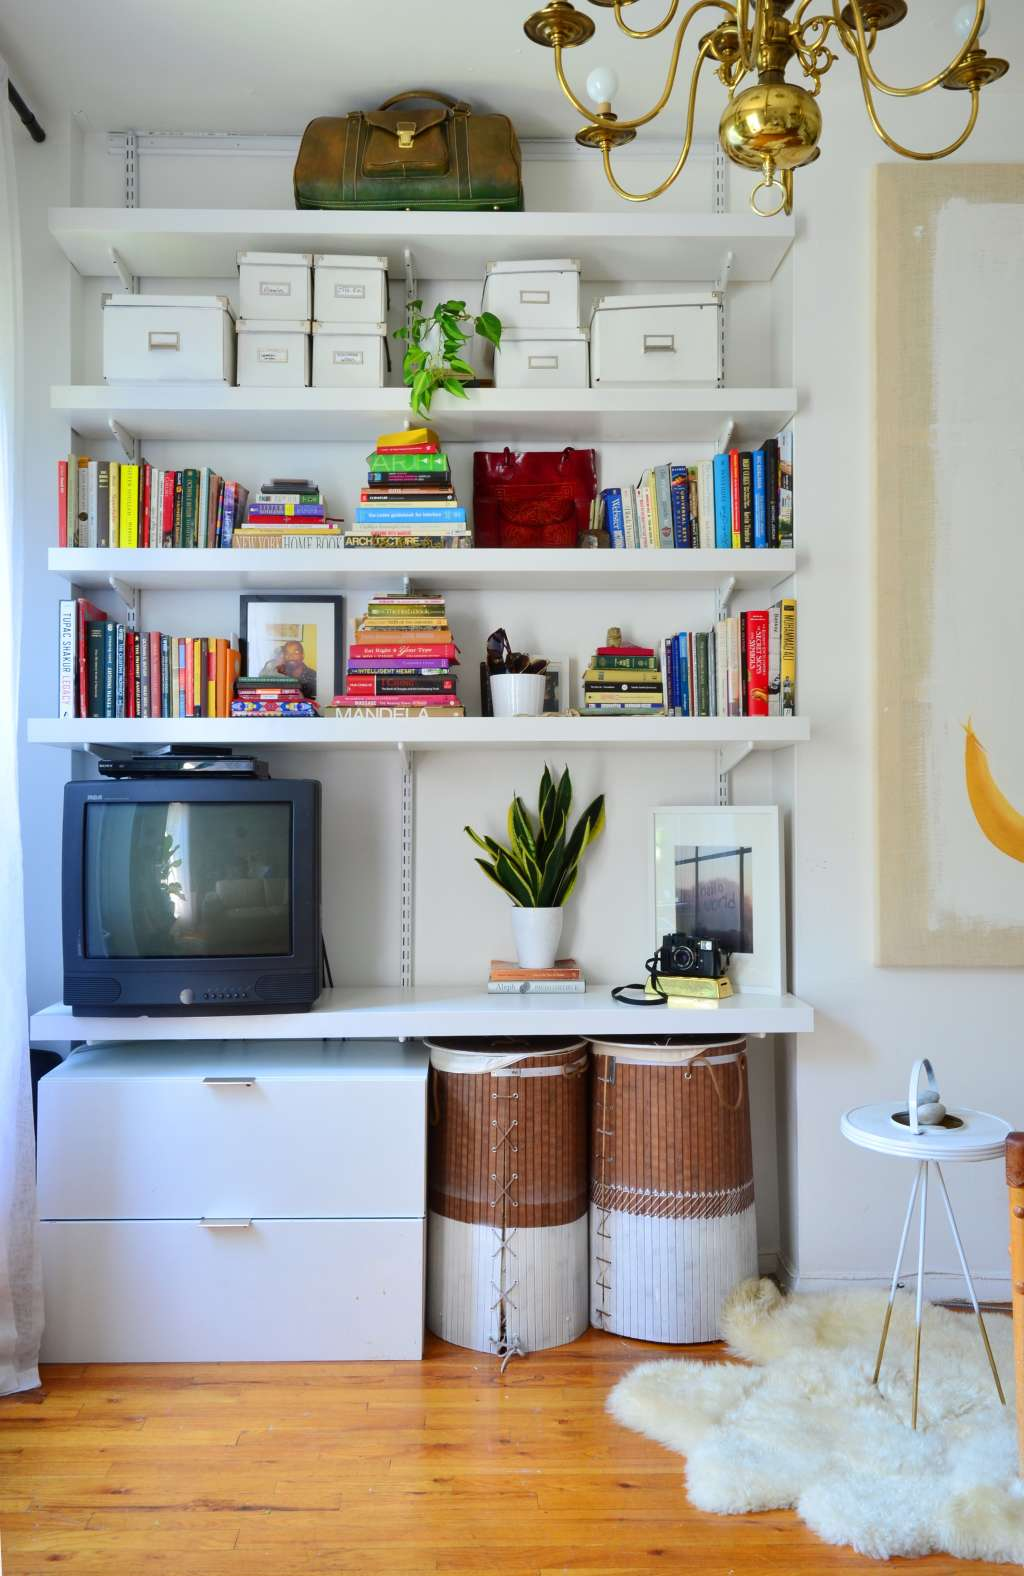 5 Smart Ways to Style and Organize Open Shelves